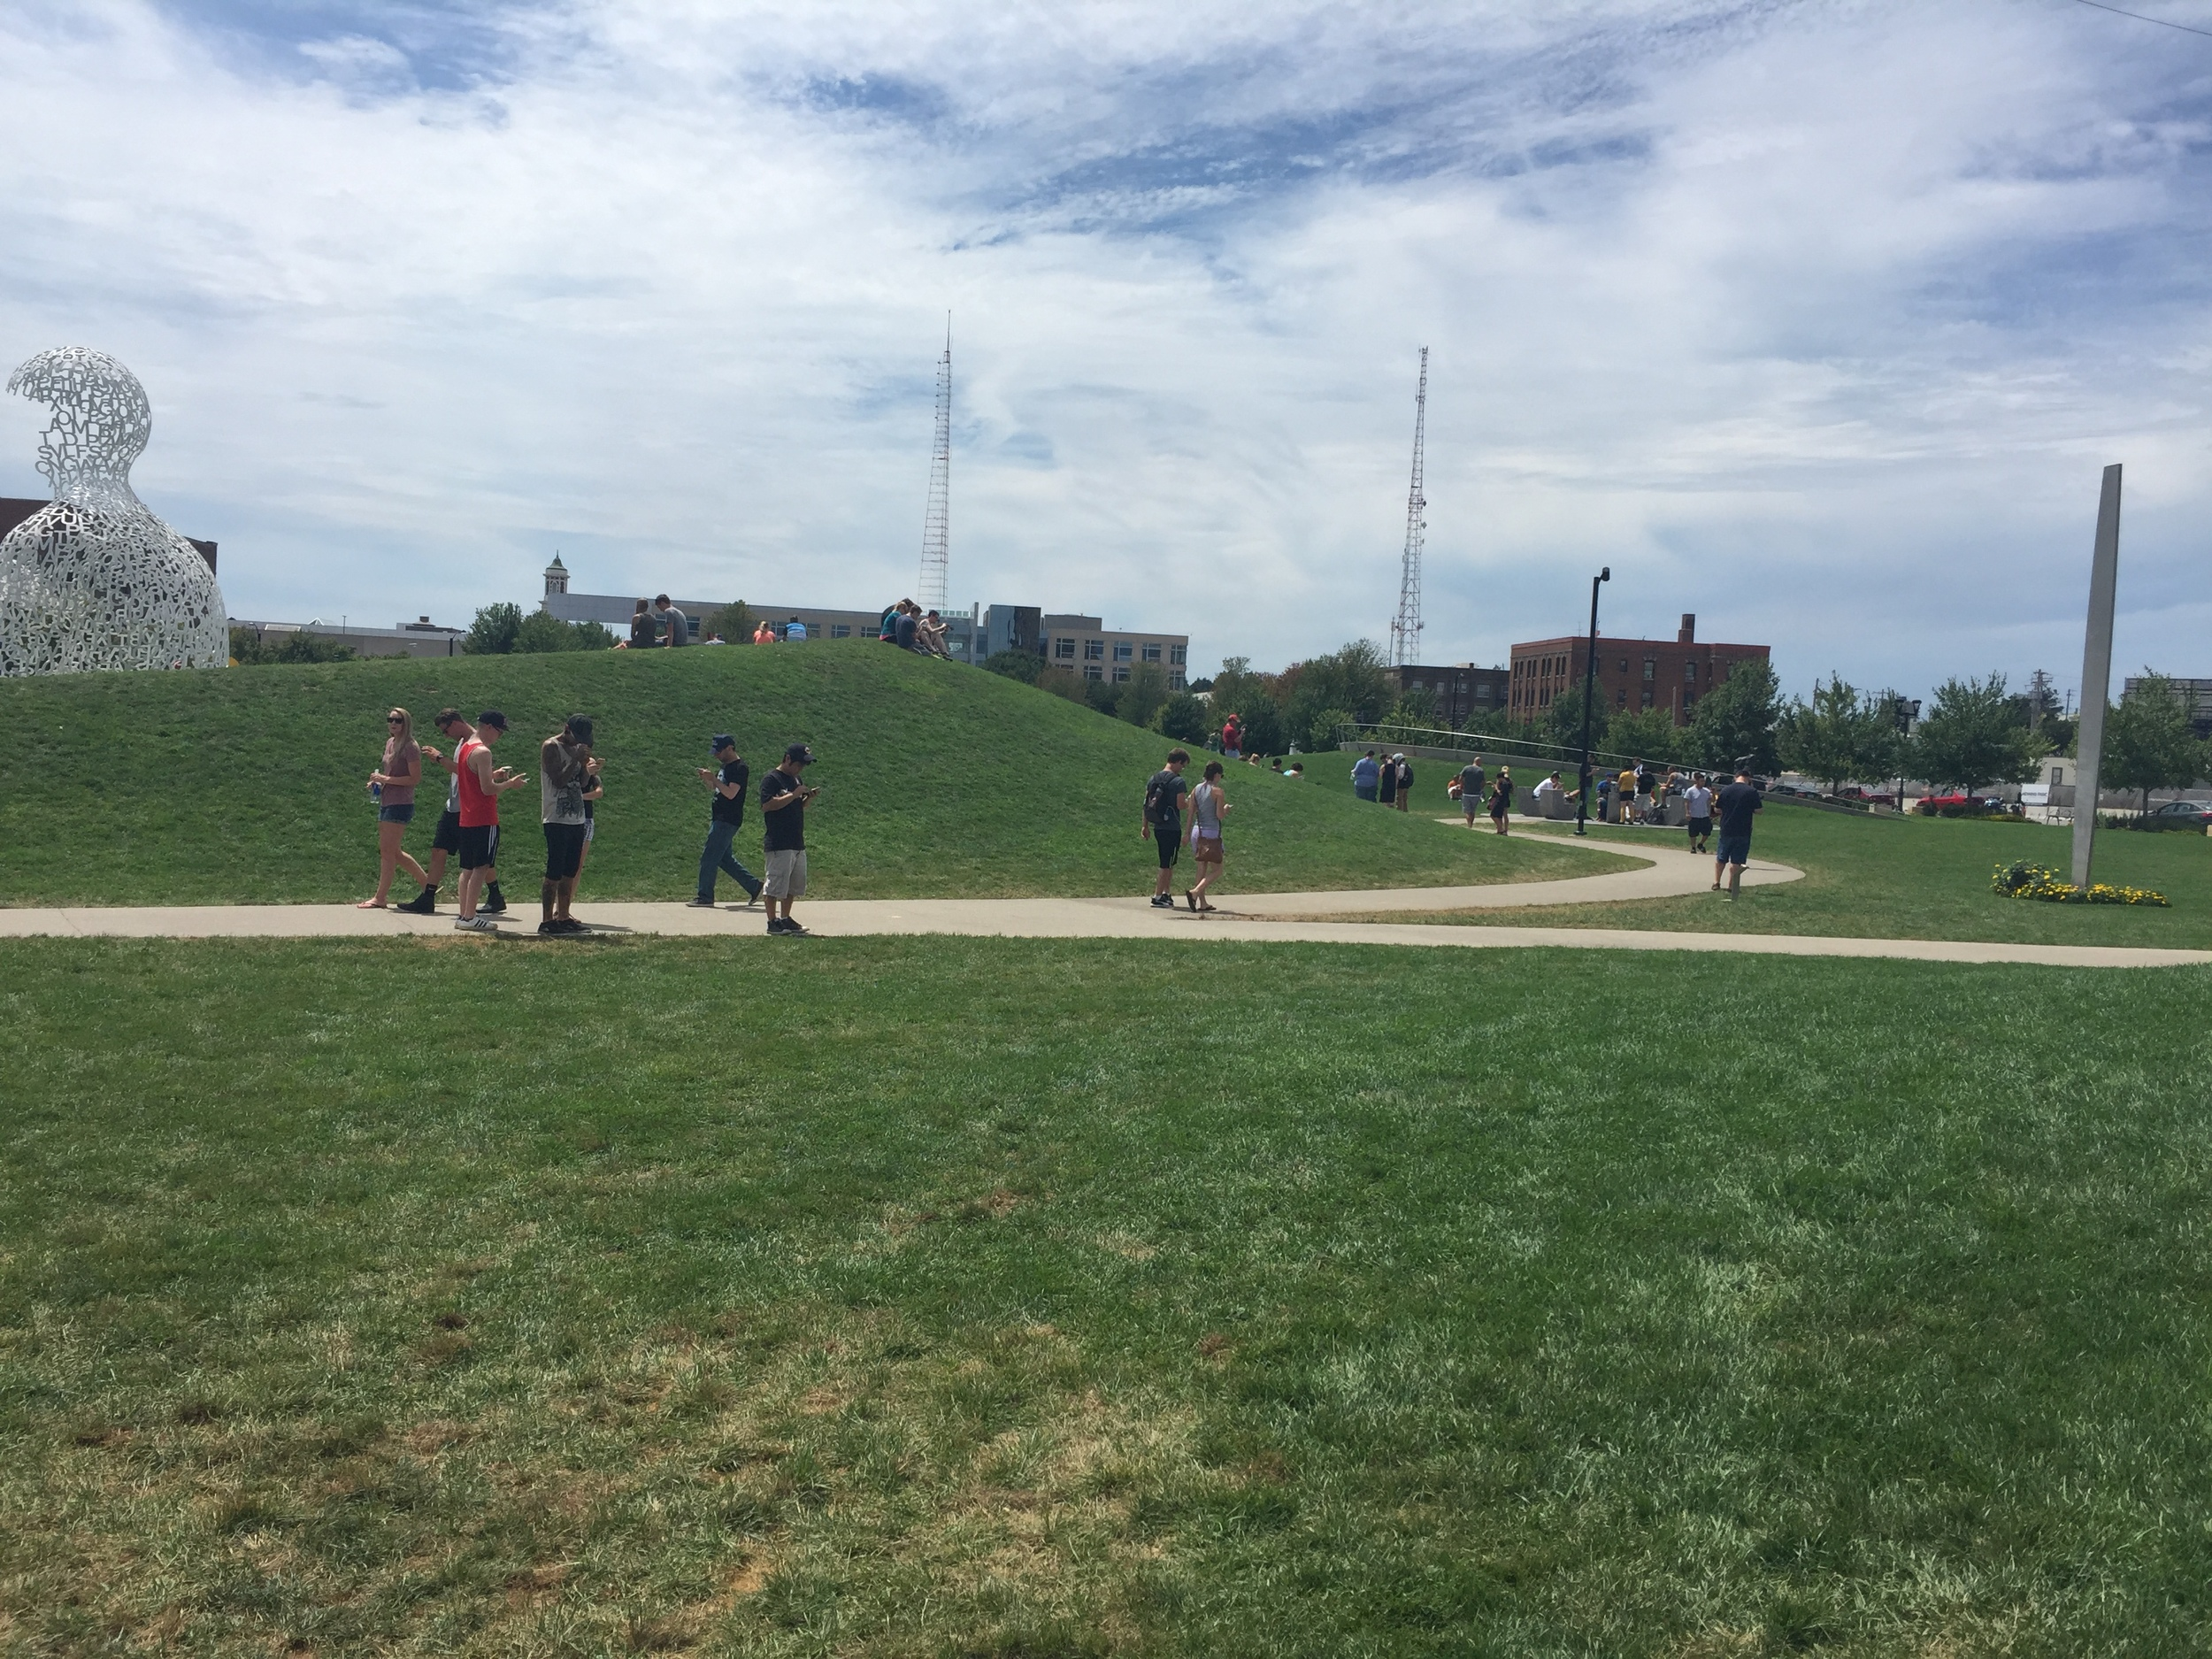 Pokemon Go sure brought the crowds to this park!